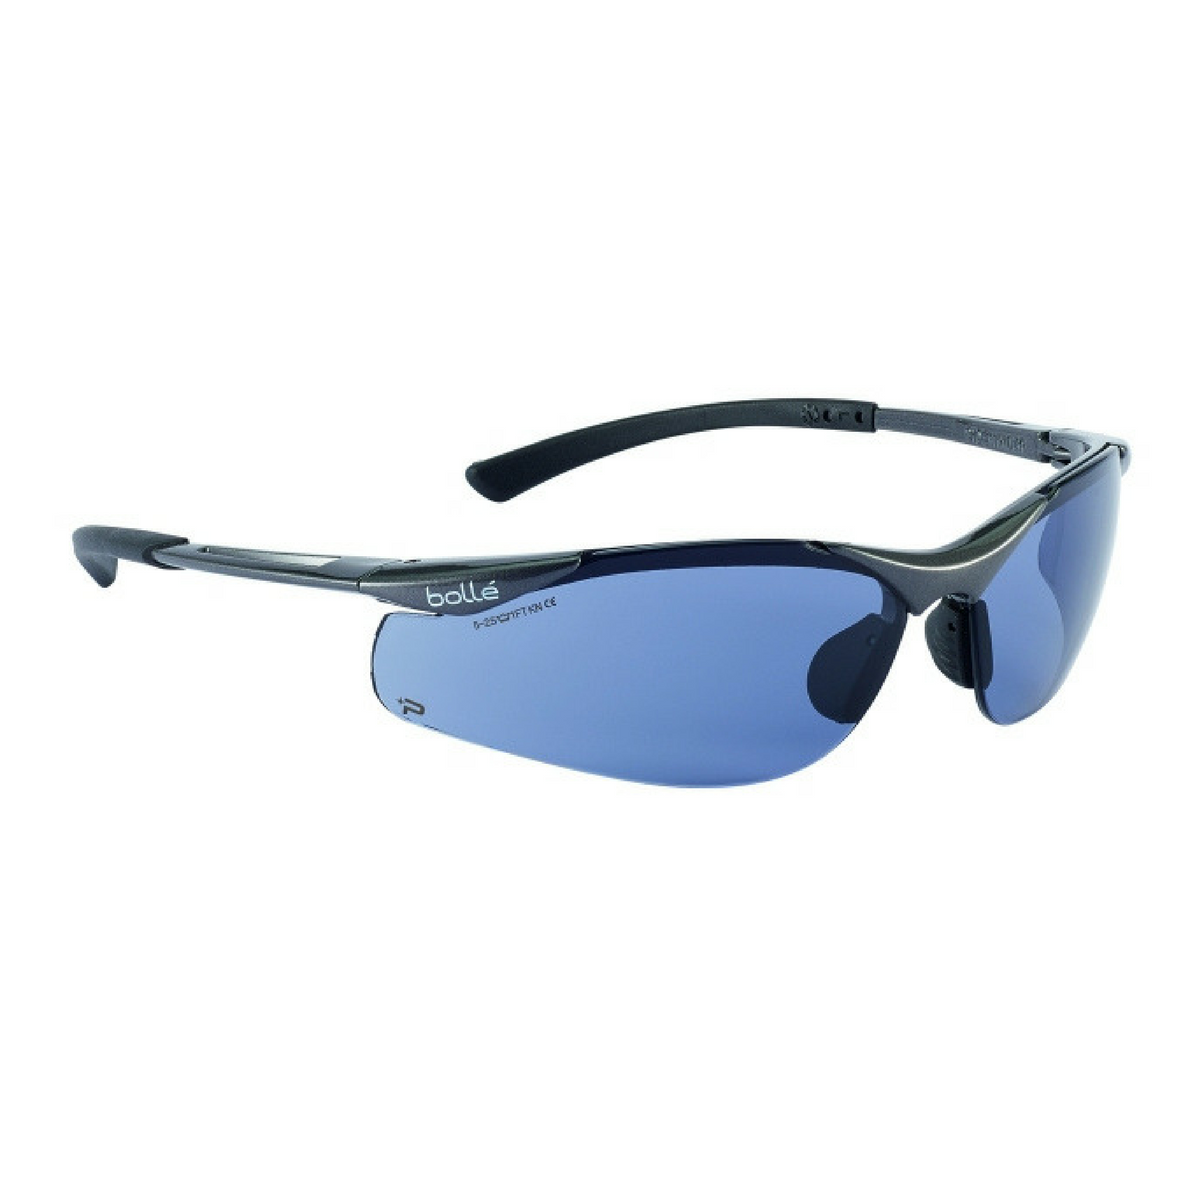 Bundle of 3 Bolle Bandido Safety Clear Polycarbonate Glasses with Strap